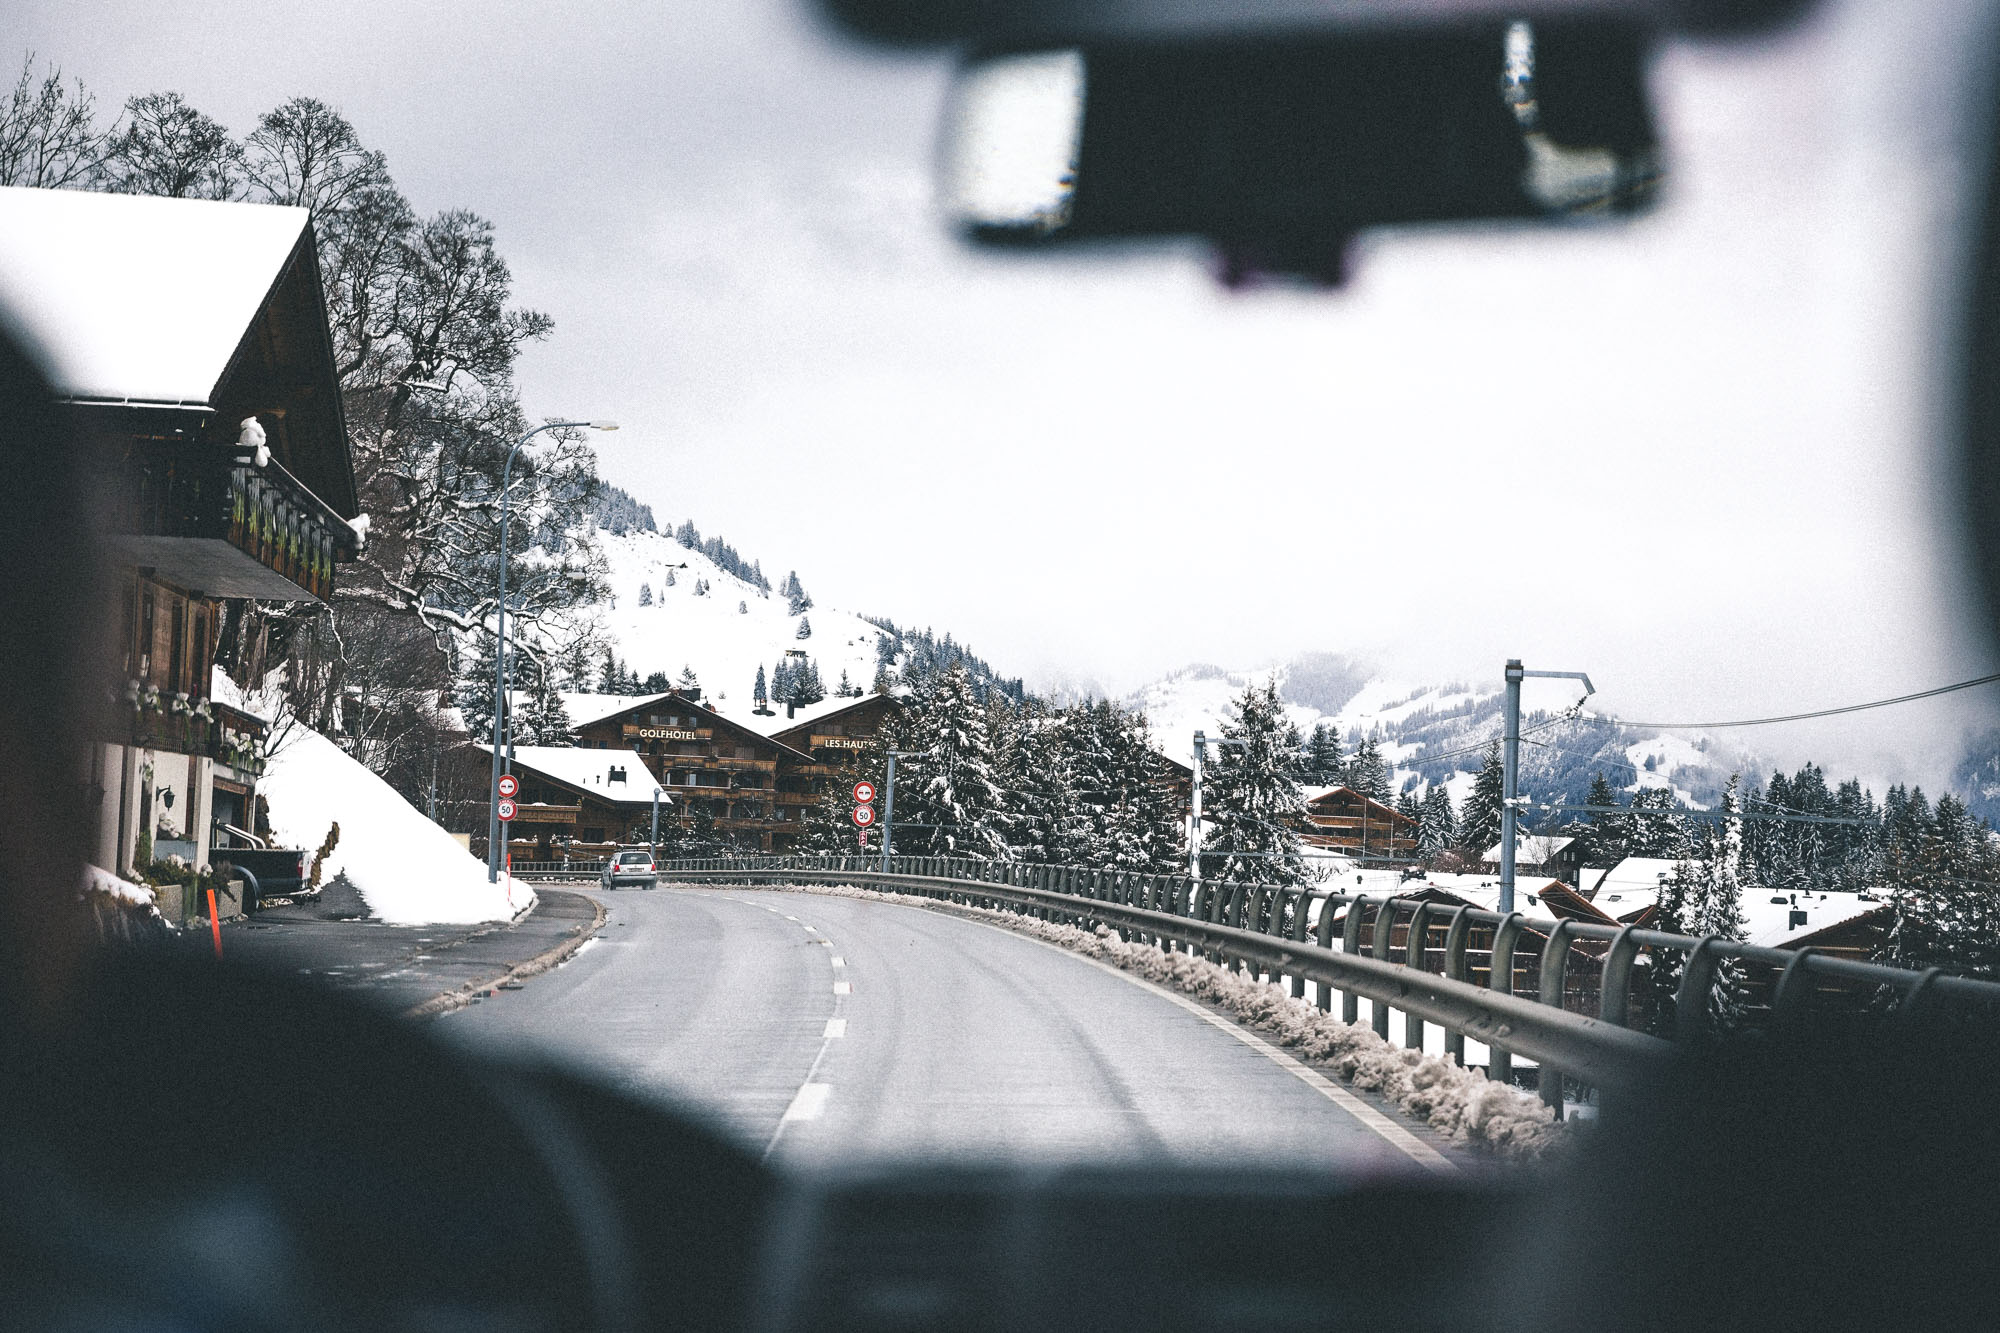 Driving in the snow in Gstaad, Switzerland